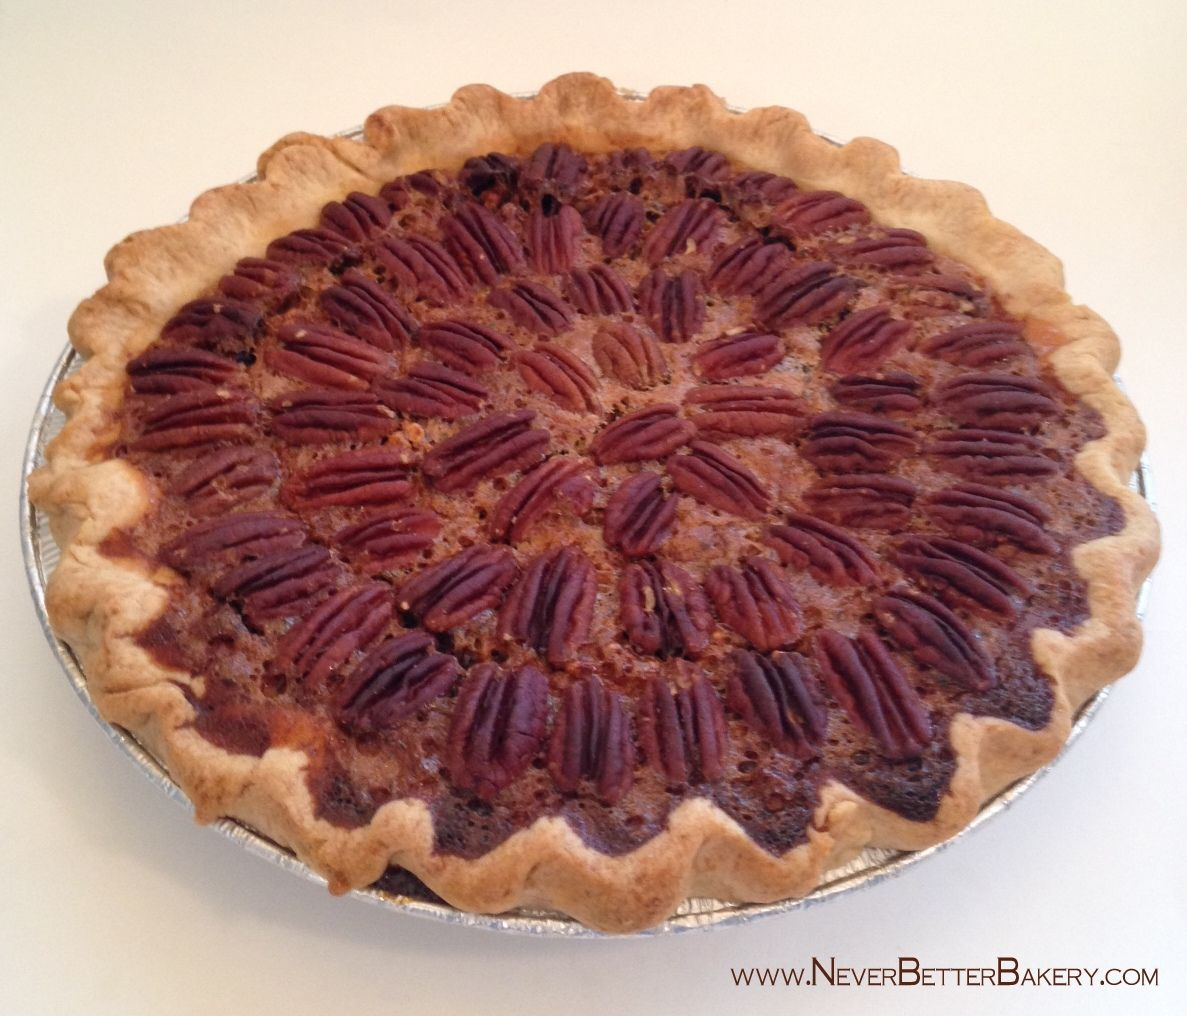 Chocolate Pecan Pie with our homemade buttery crust.